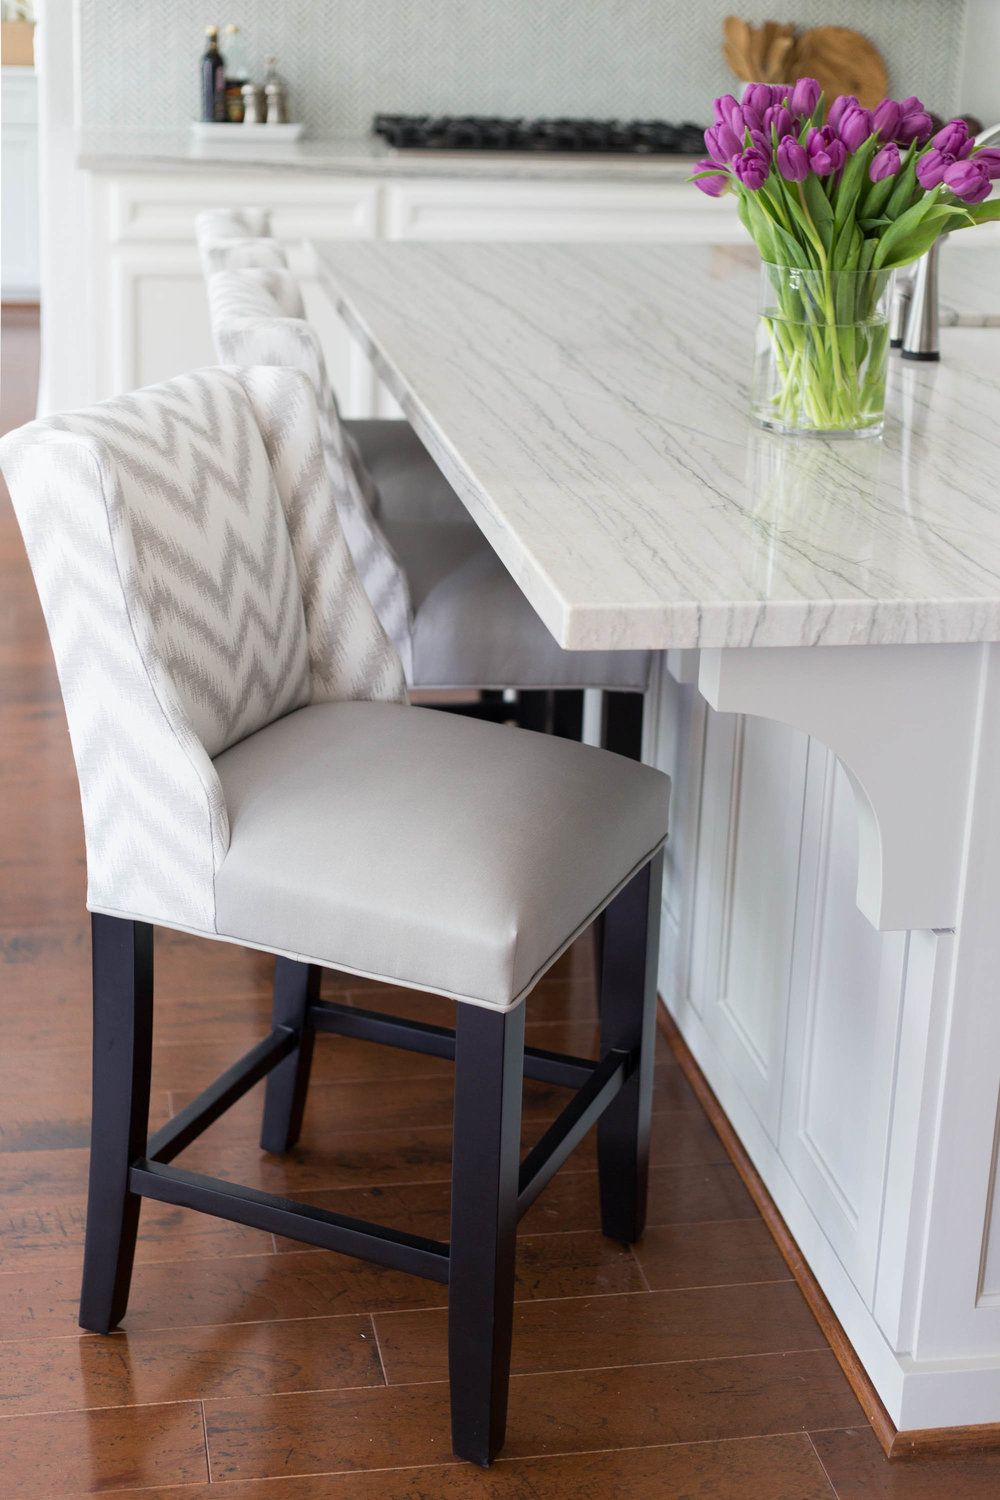 Custom barstools in gray chevron with vinyl seats | Designer: Carla Aston, Photographer: Tori Aston #barstools